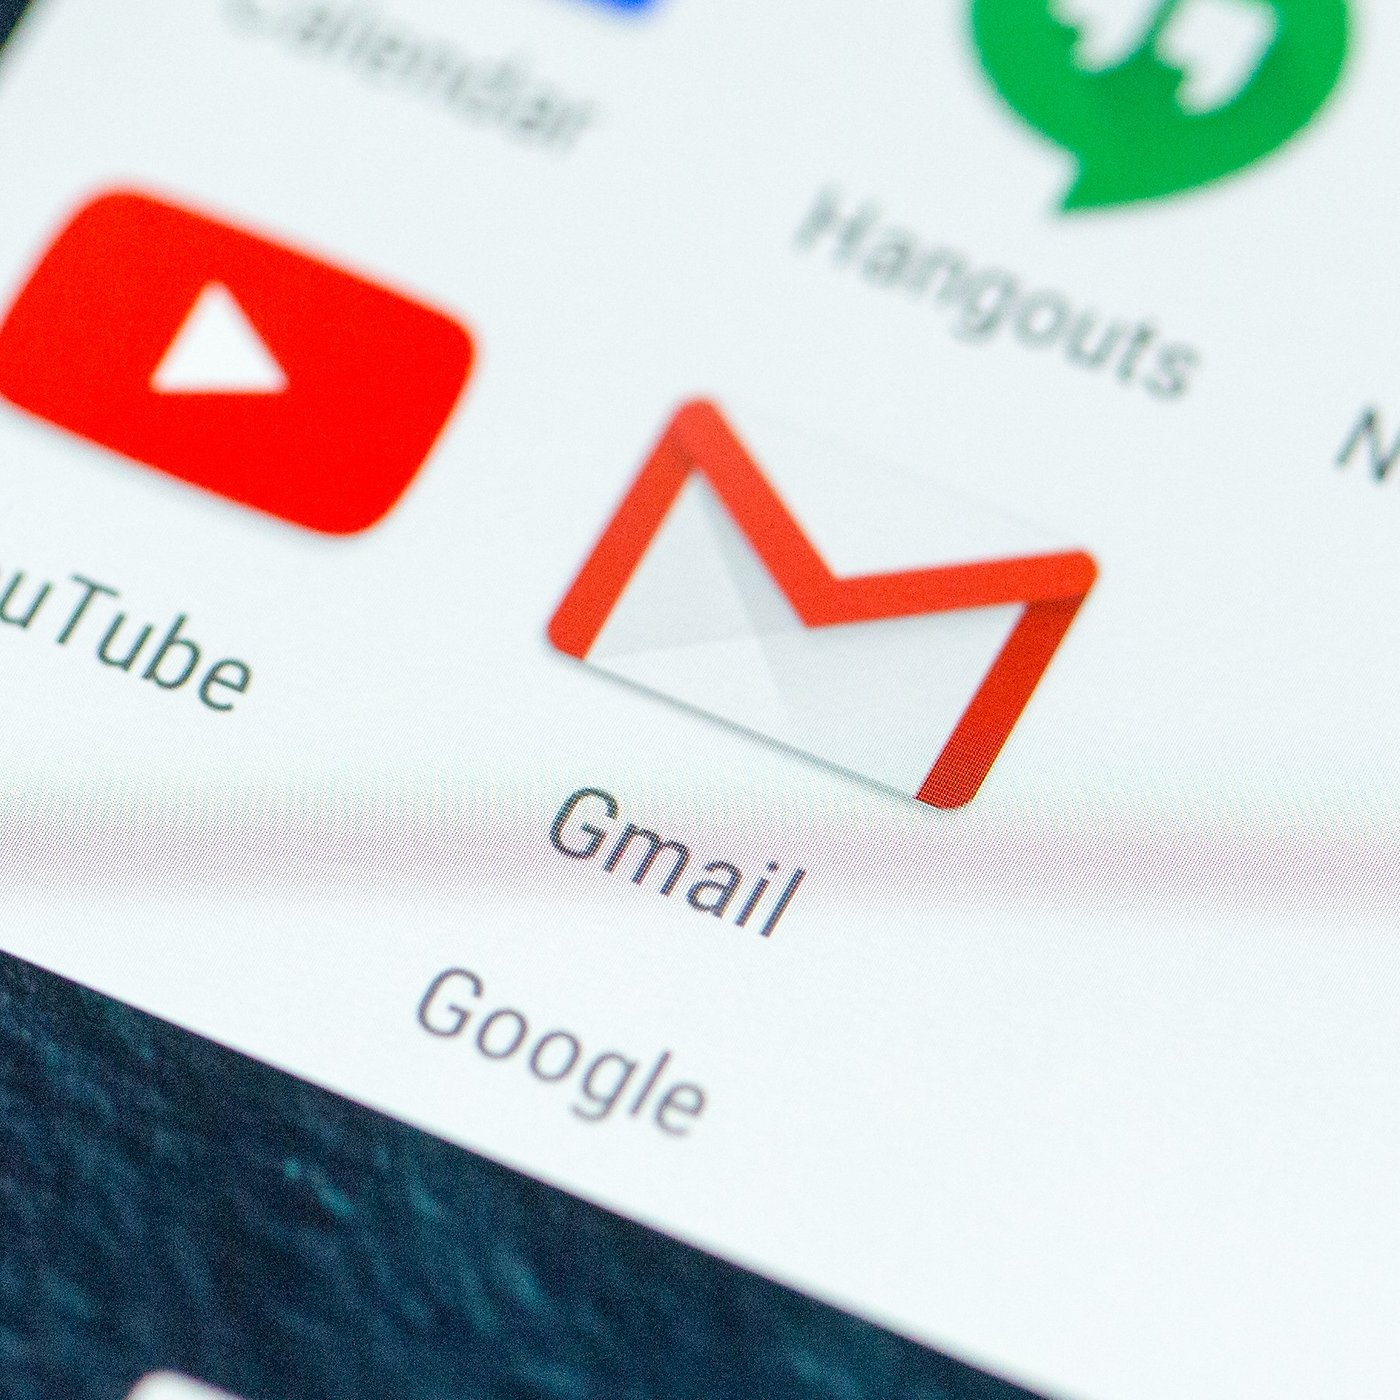 Google improves Gmail by changing the right click | AndroidPIT